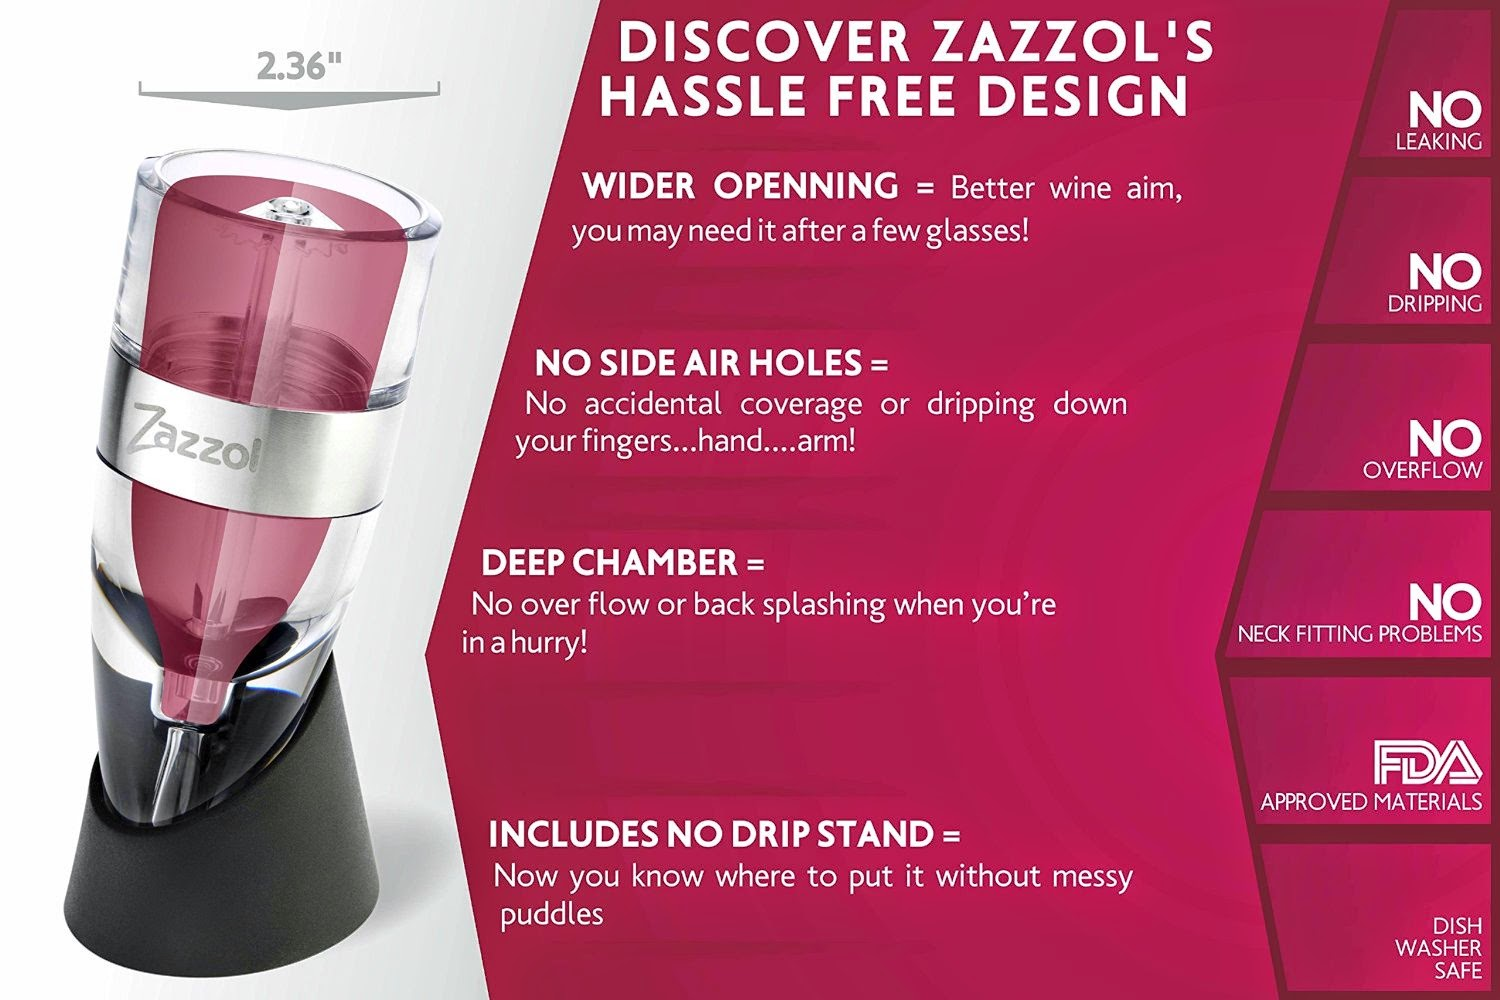 The Zazzol Wine Aerator comes with a lifetime satisfaction guarantee